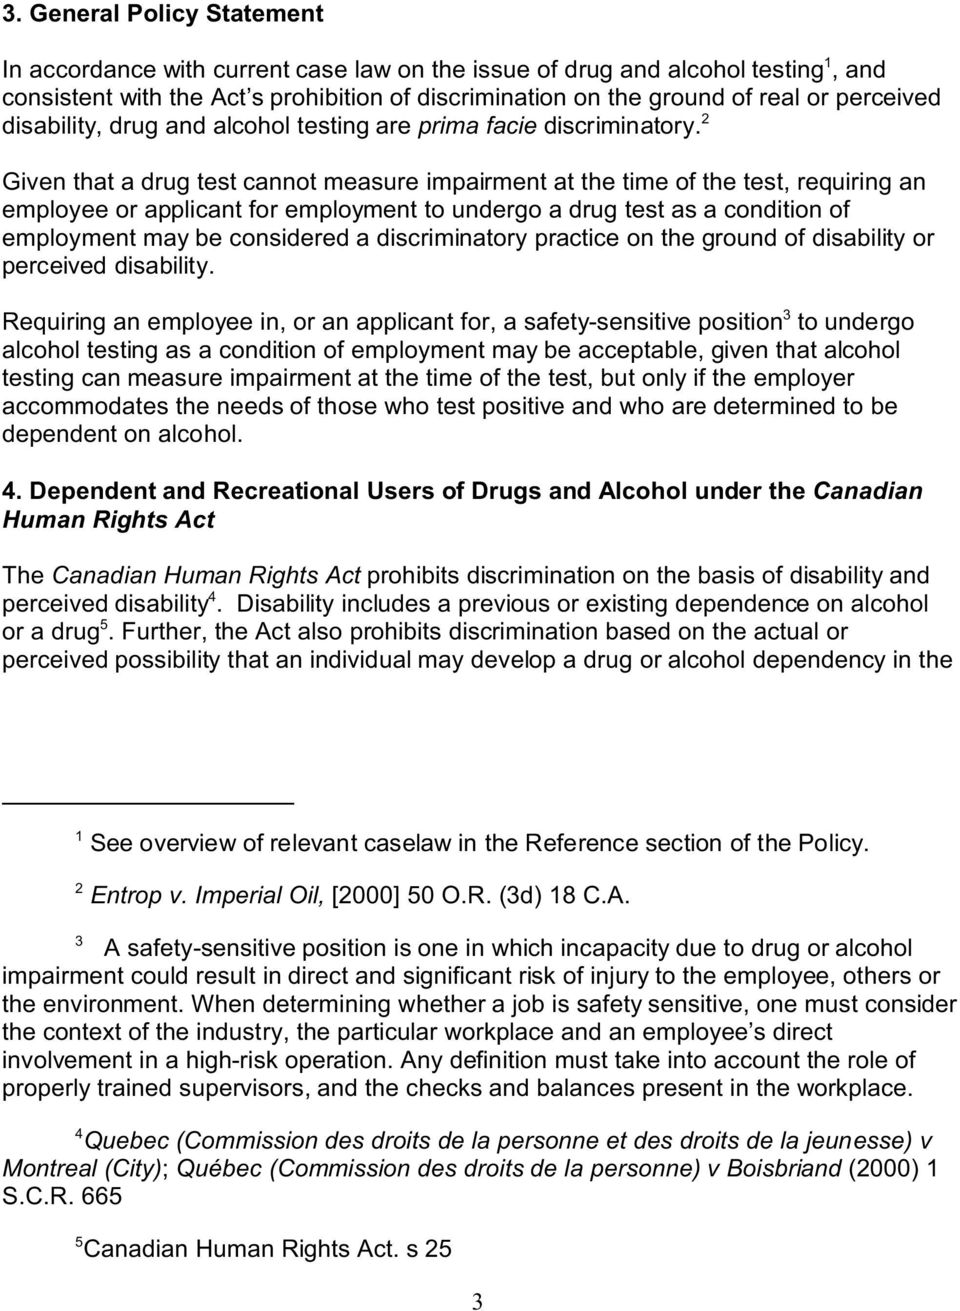 2 Given that a drug test cannot measure impairment at the time of the test, requiring an employee or applicant for employment to undergo a drug test as a condition of employment may be considered a